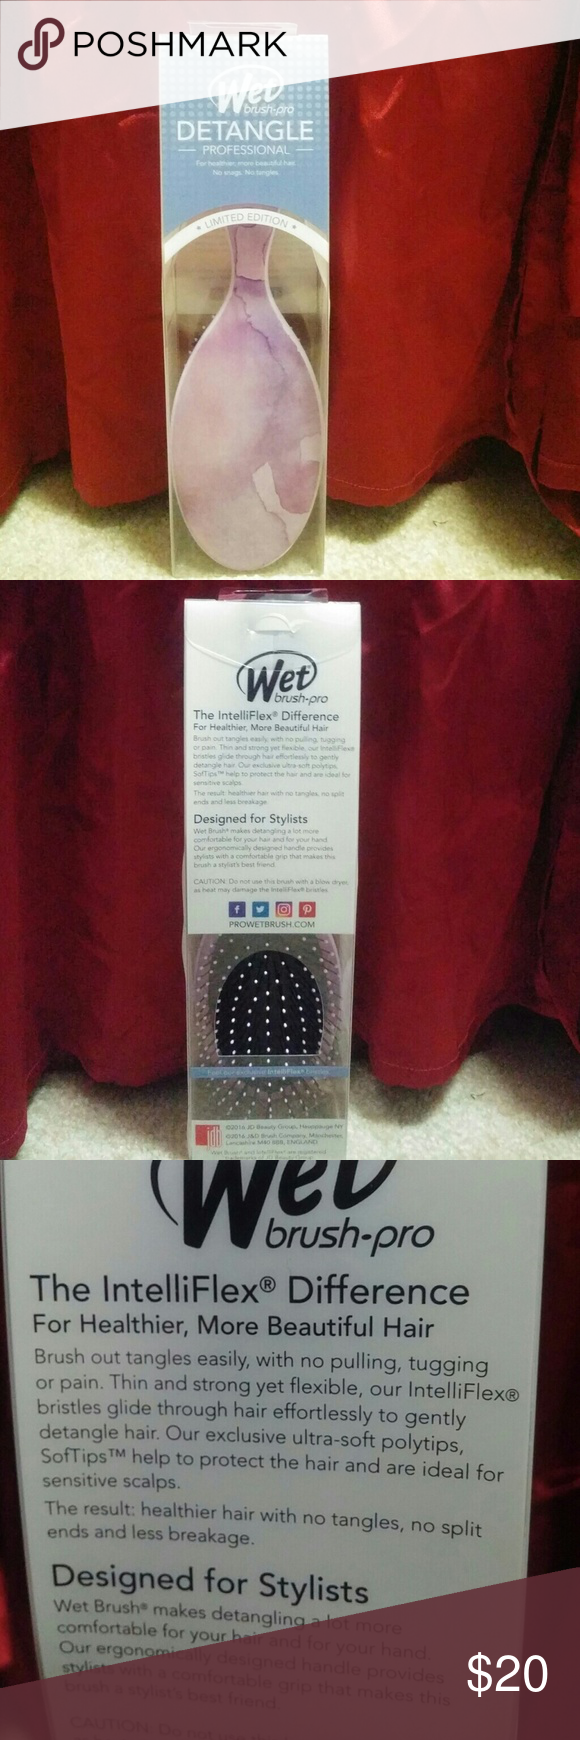 Wet brush-pro Professional detangle wet brush pro for healthier,more beautiful hair. No snags.No tangles. *Limited edition*.brand new in box never opened. Wet pro brush Other